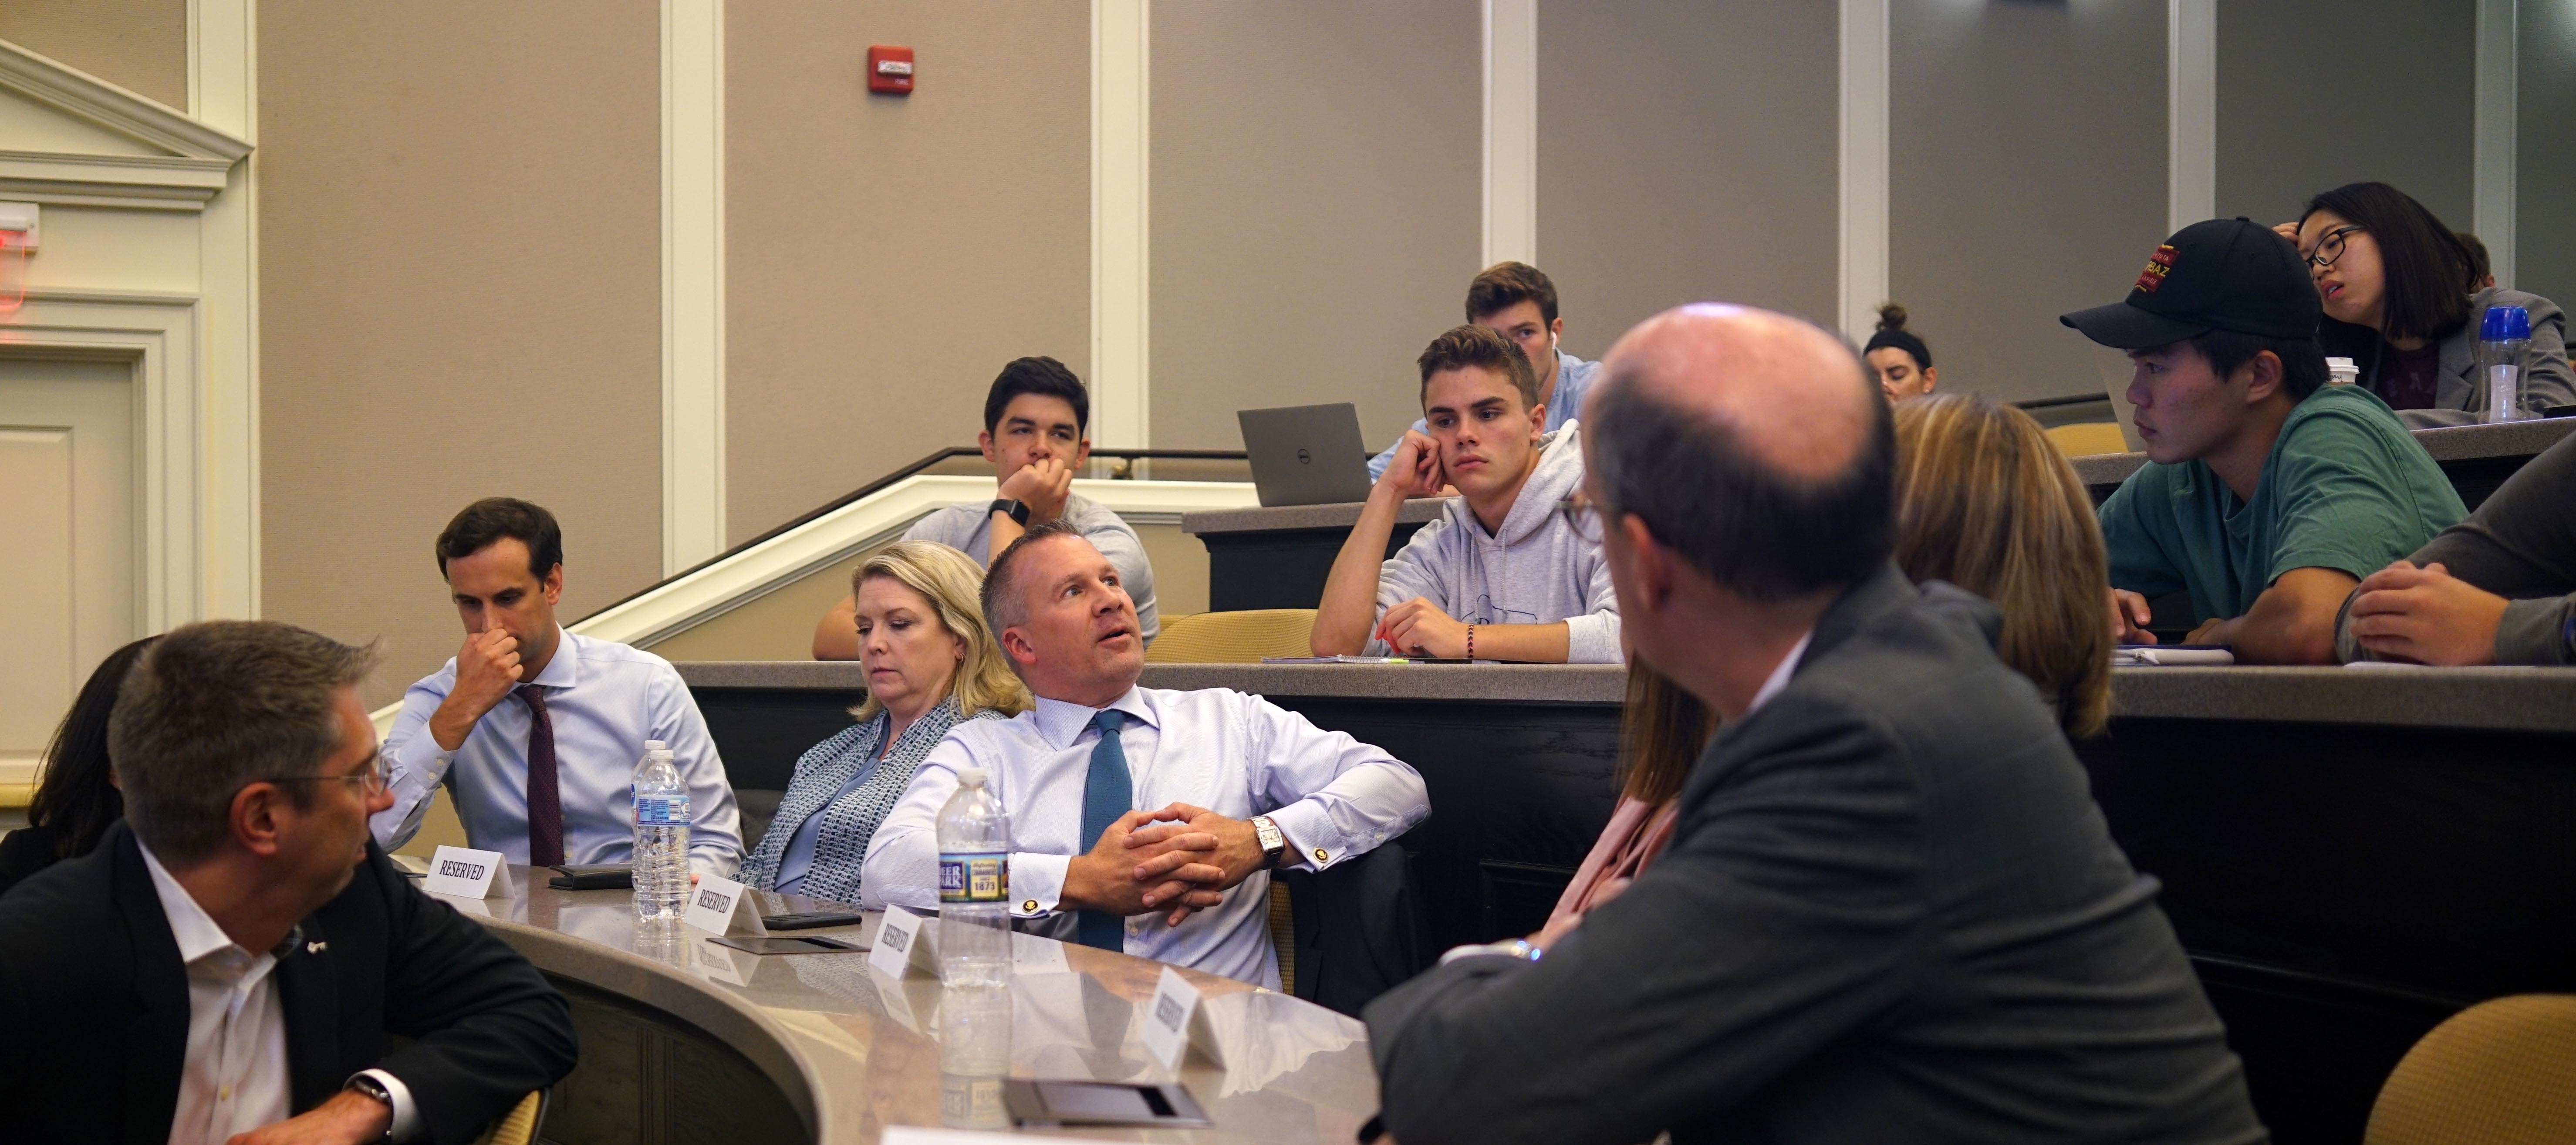 A Fifth Third Bank executive answer a student's question at a presentation